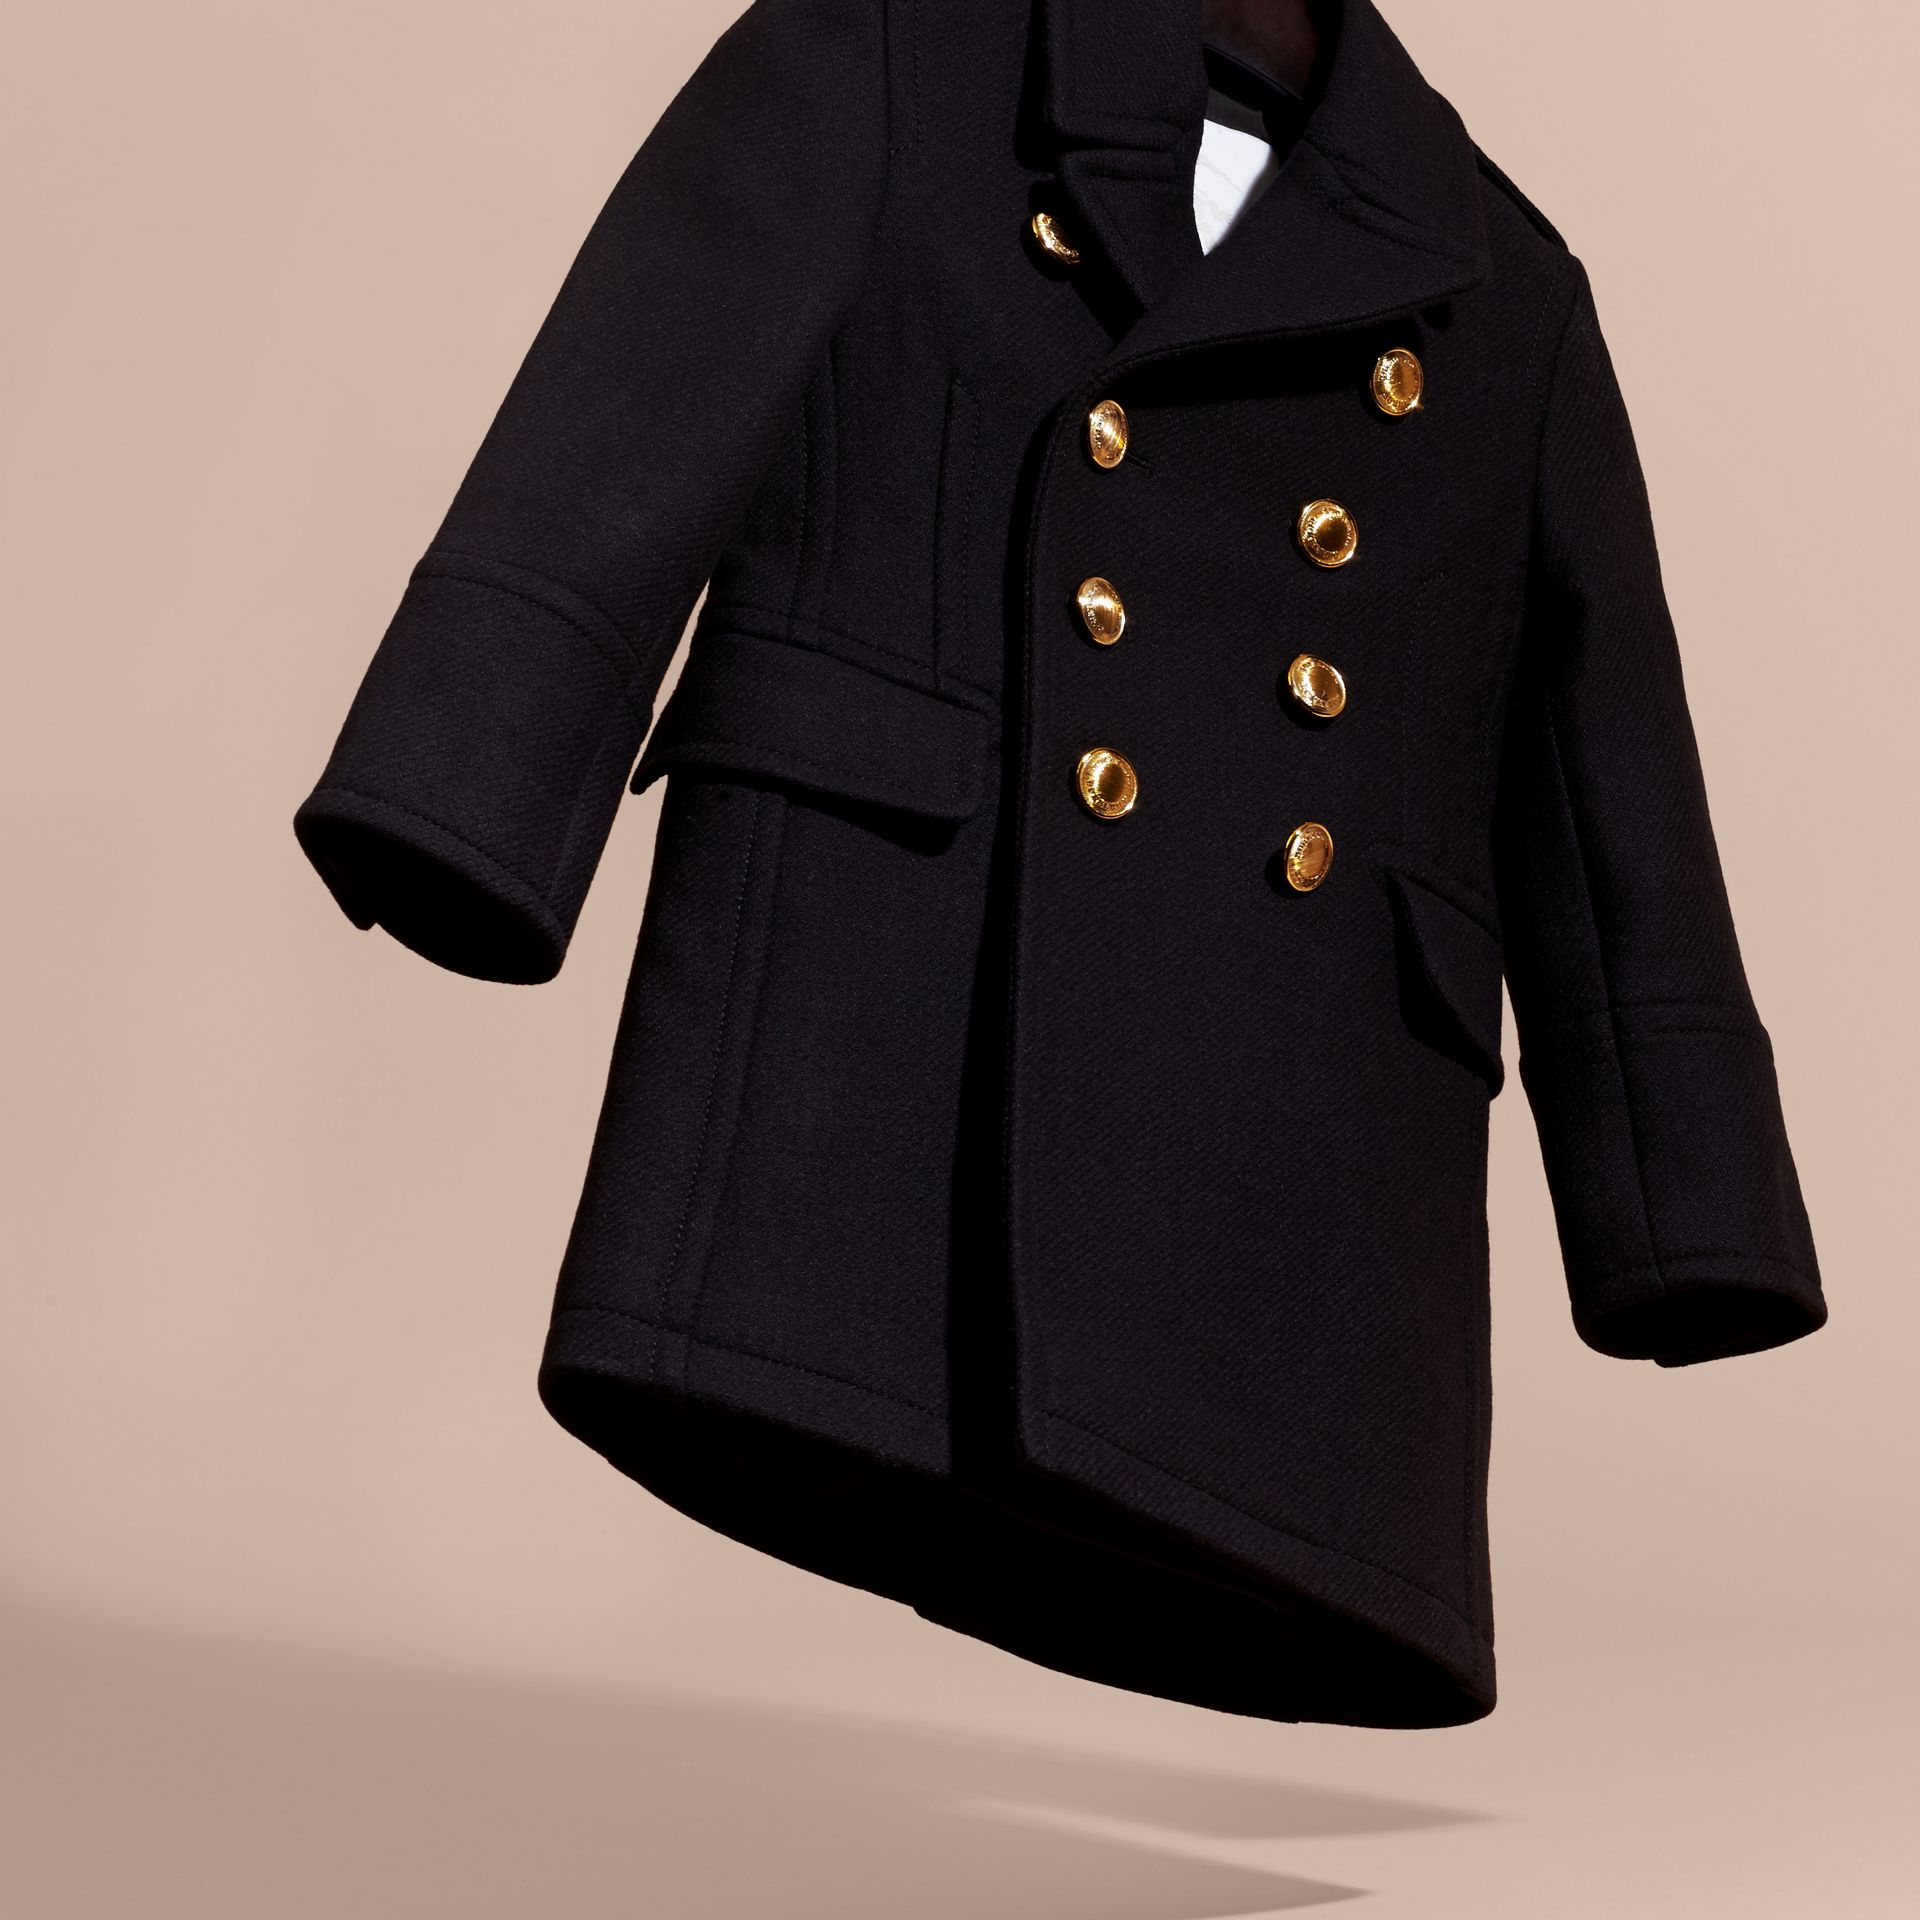 Navy Wool Cashmere Blend Tailored Coat with Domed Buttons - gallery image 3